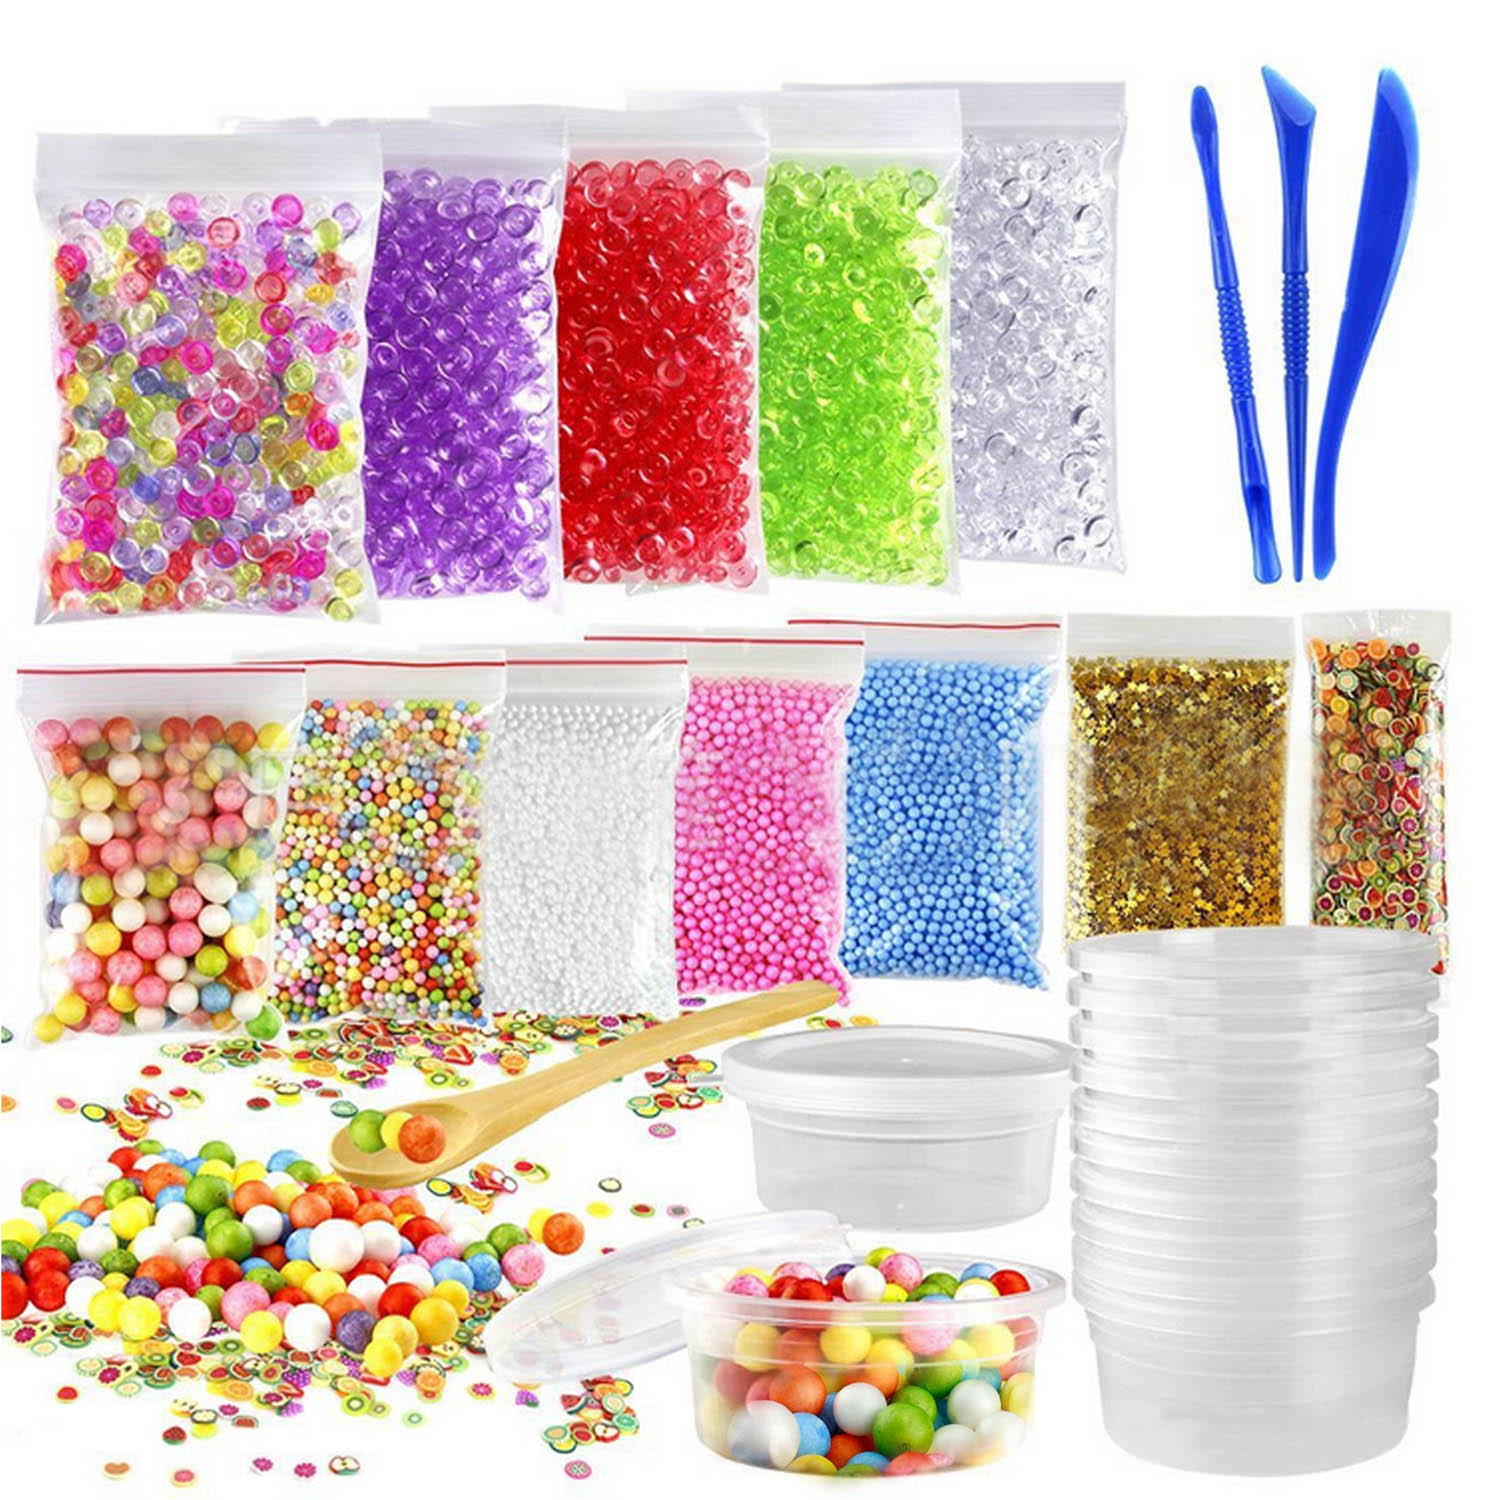 Colorful Mini Beads Foam Balls Fruit Slice Gold Slime Tool Container Kit for Slime DIY Craft Gift Box Filler Wedding Party Decor